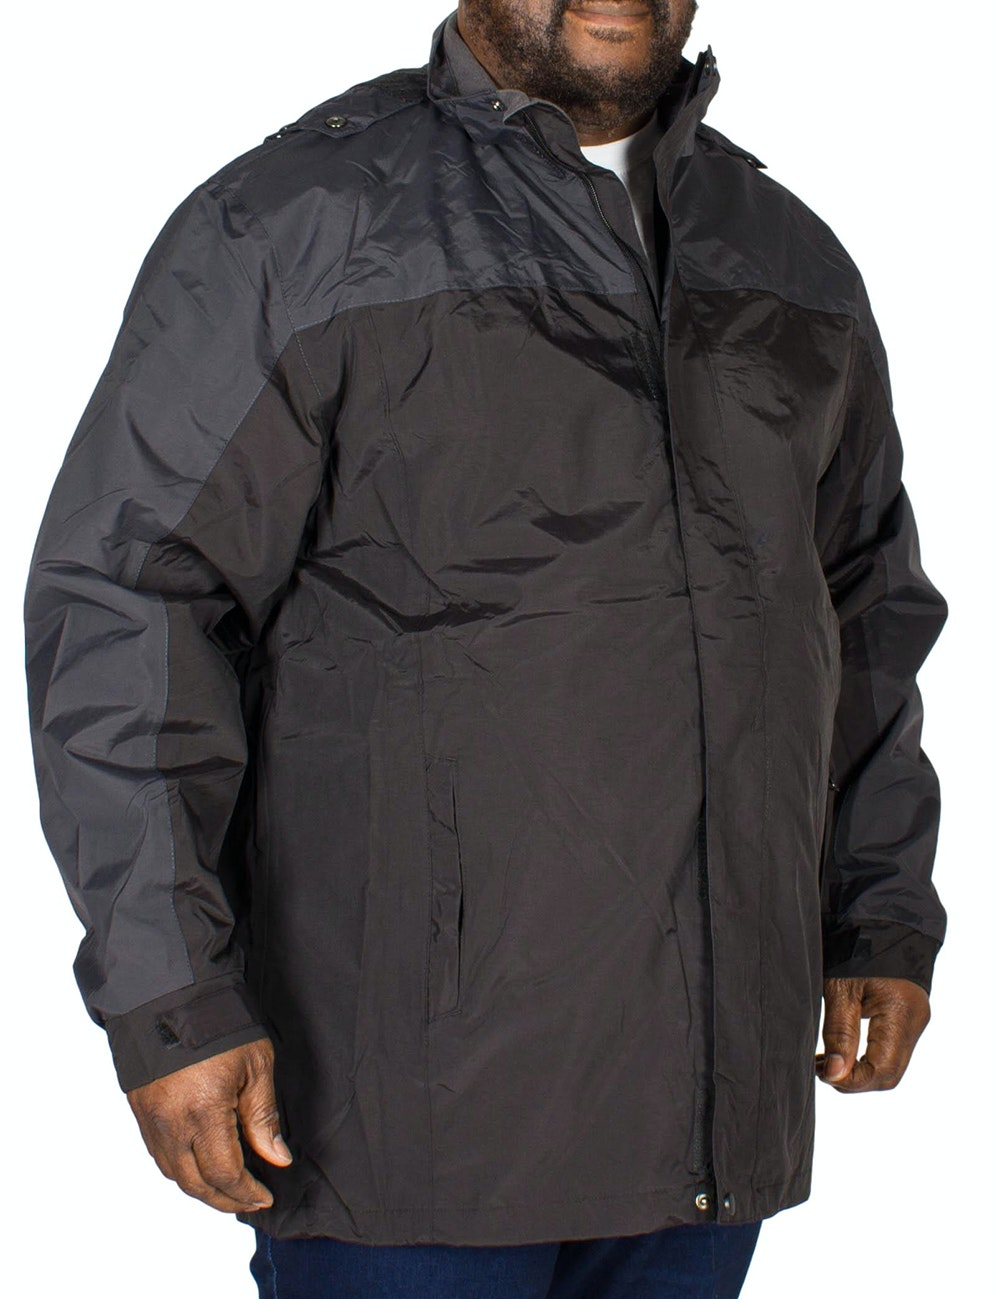 KAM Contrast Showerproof Jacket Black